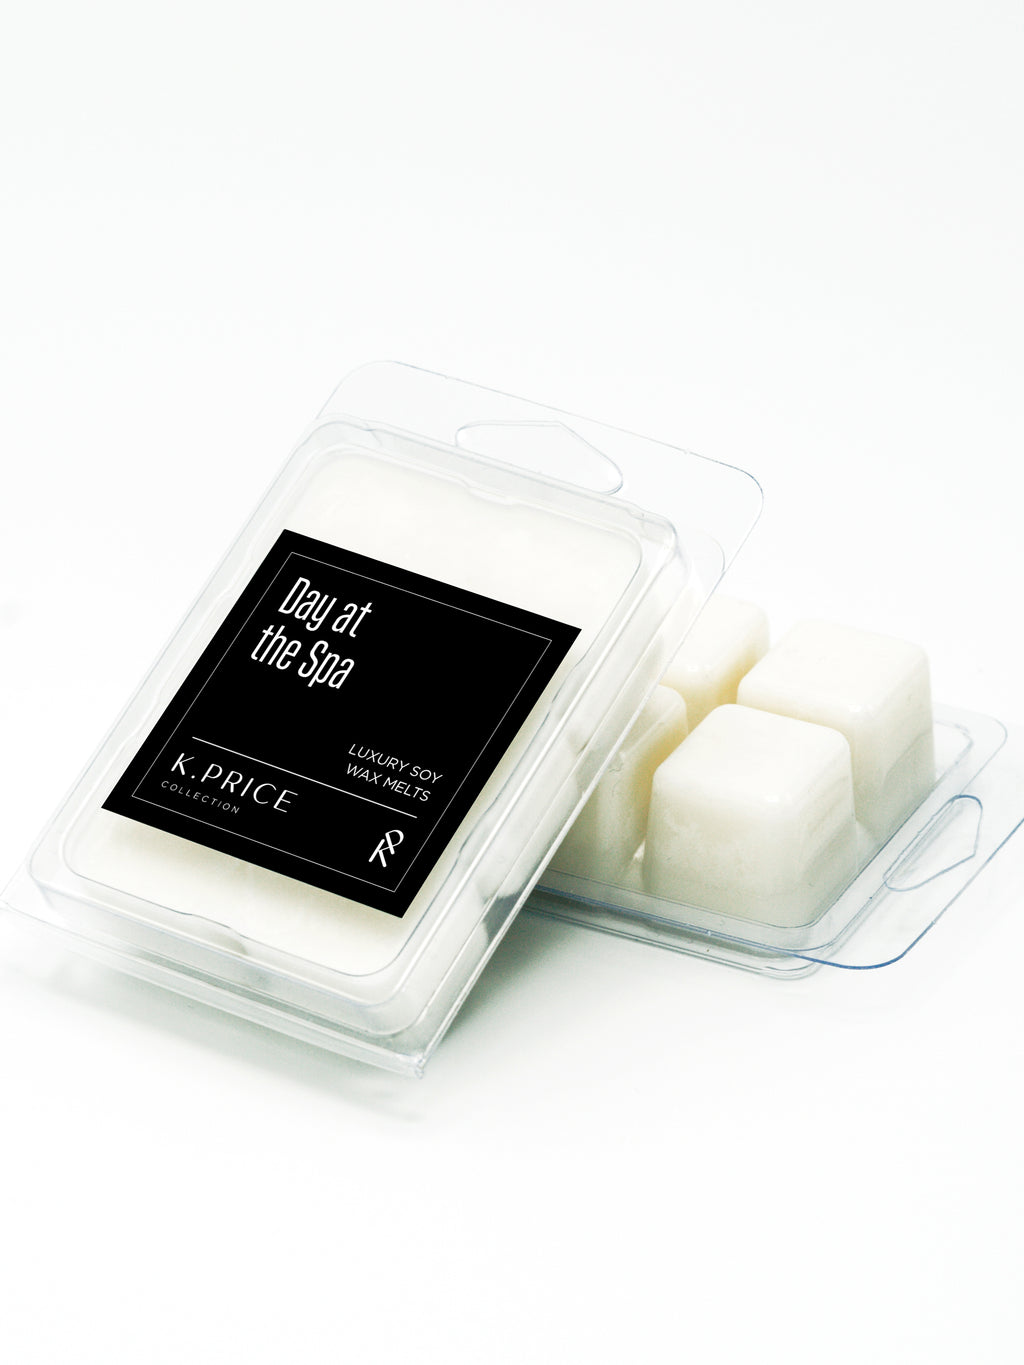 Day at the Spa - Soy Wax Melts